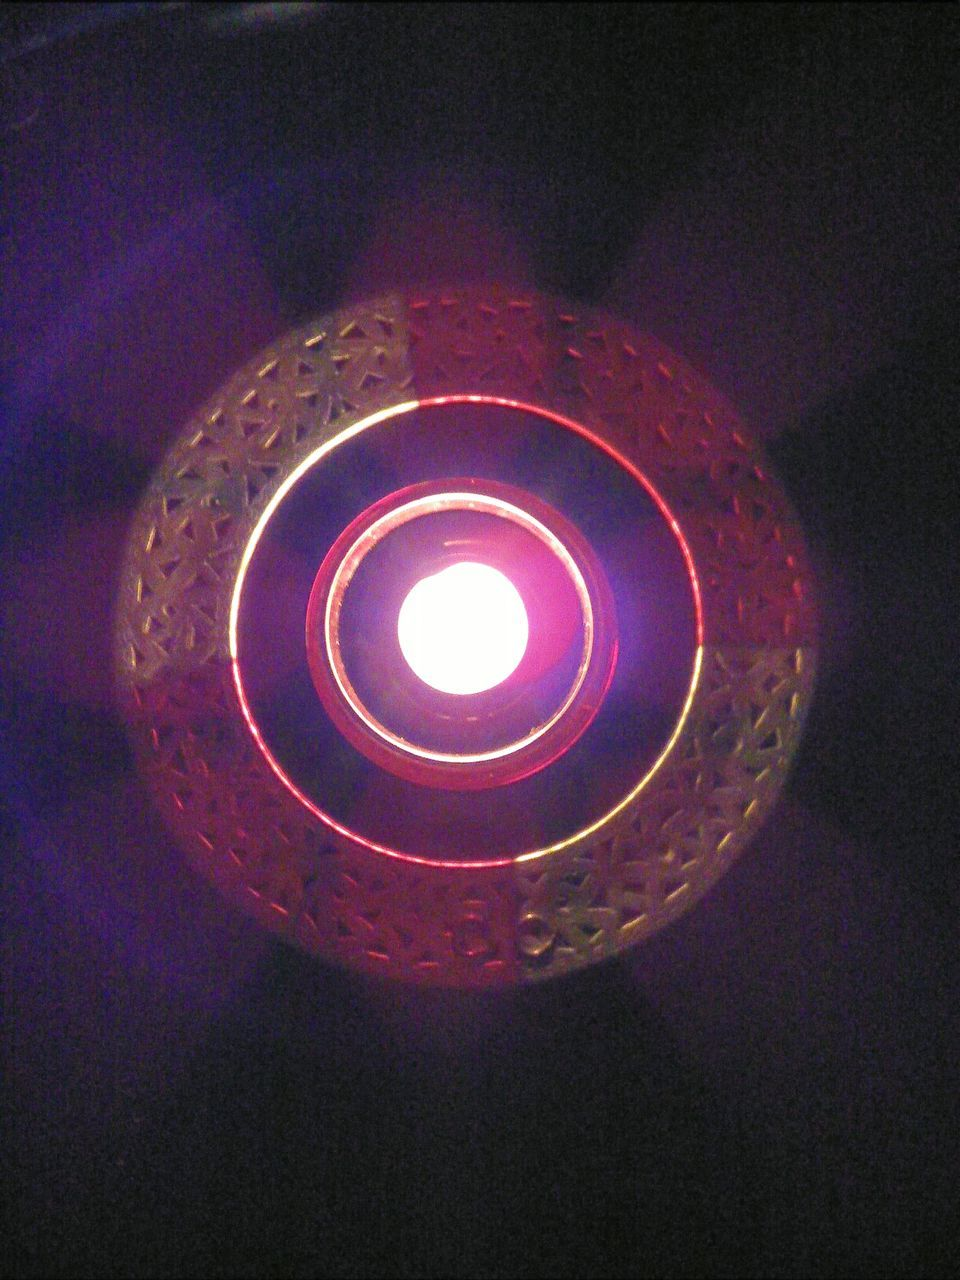 High Angle View Of Burning Candle In Darkroom